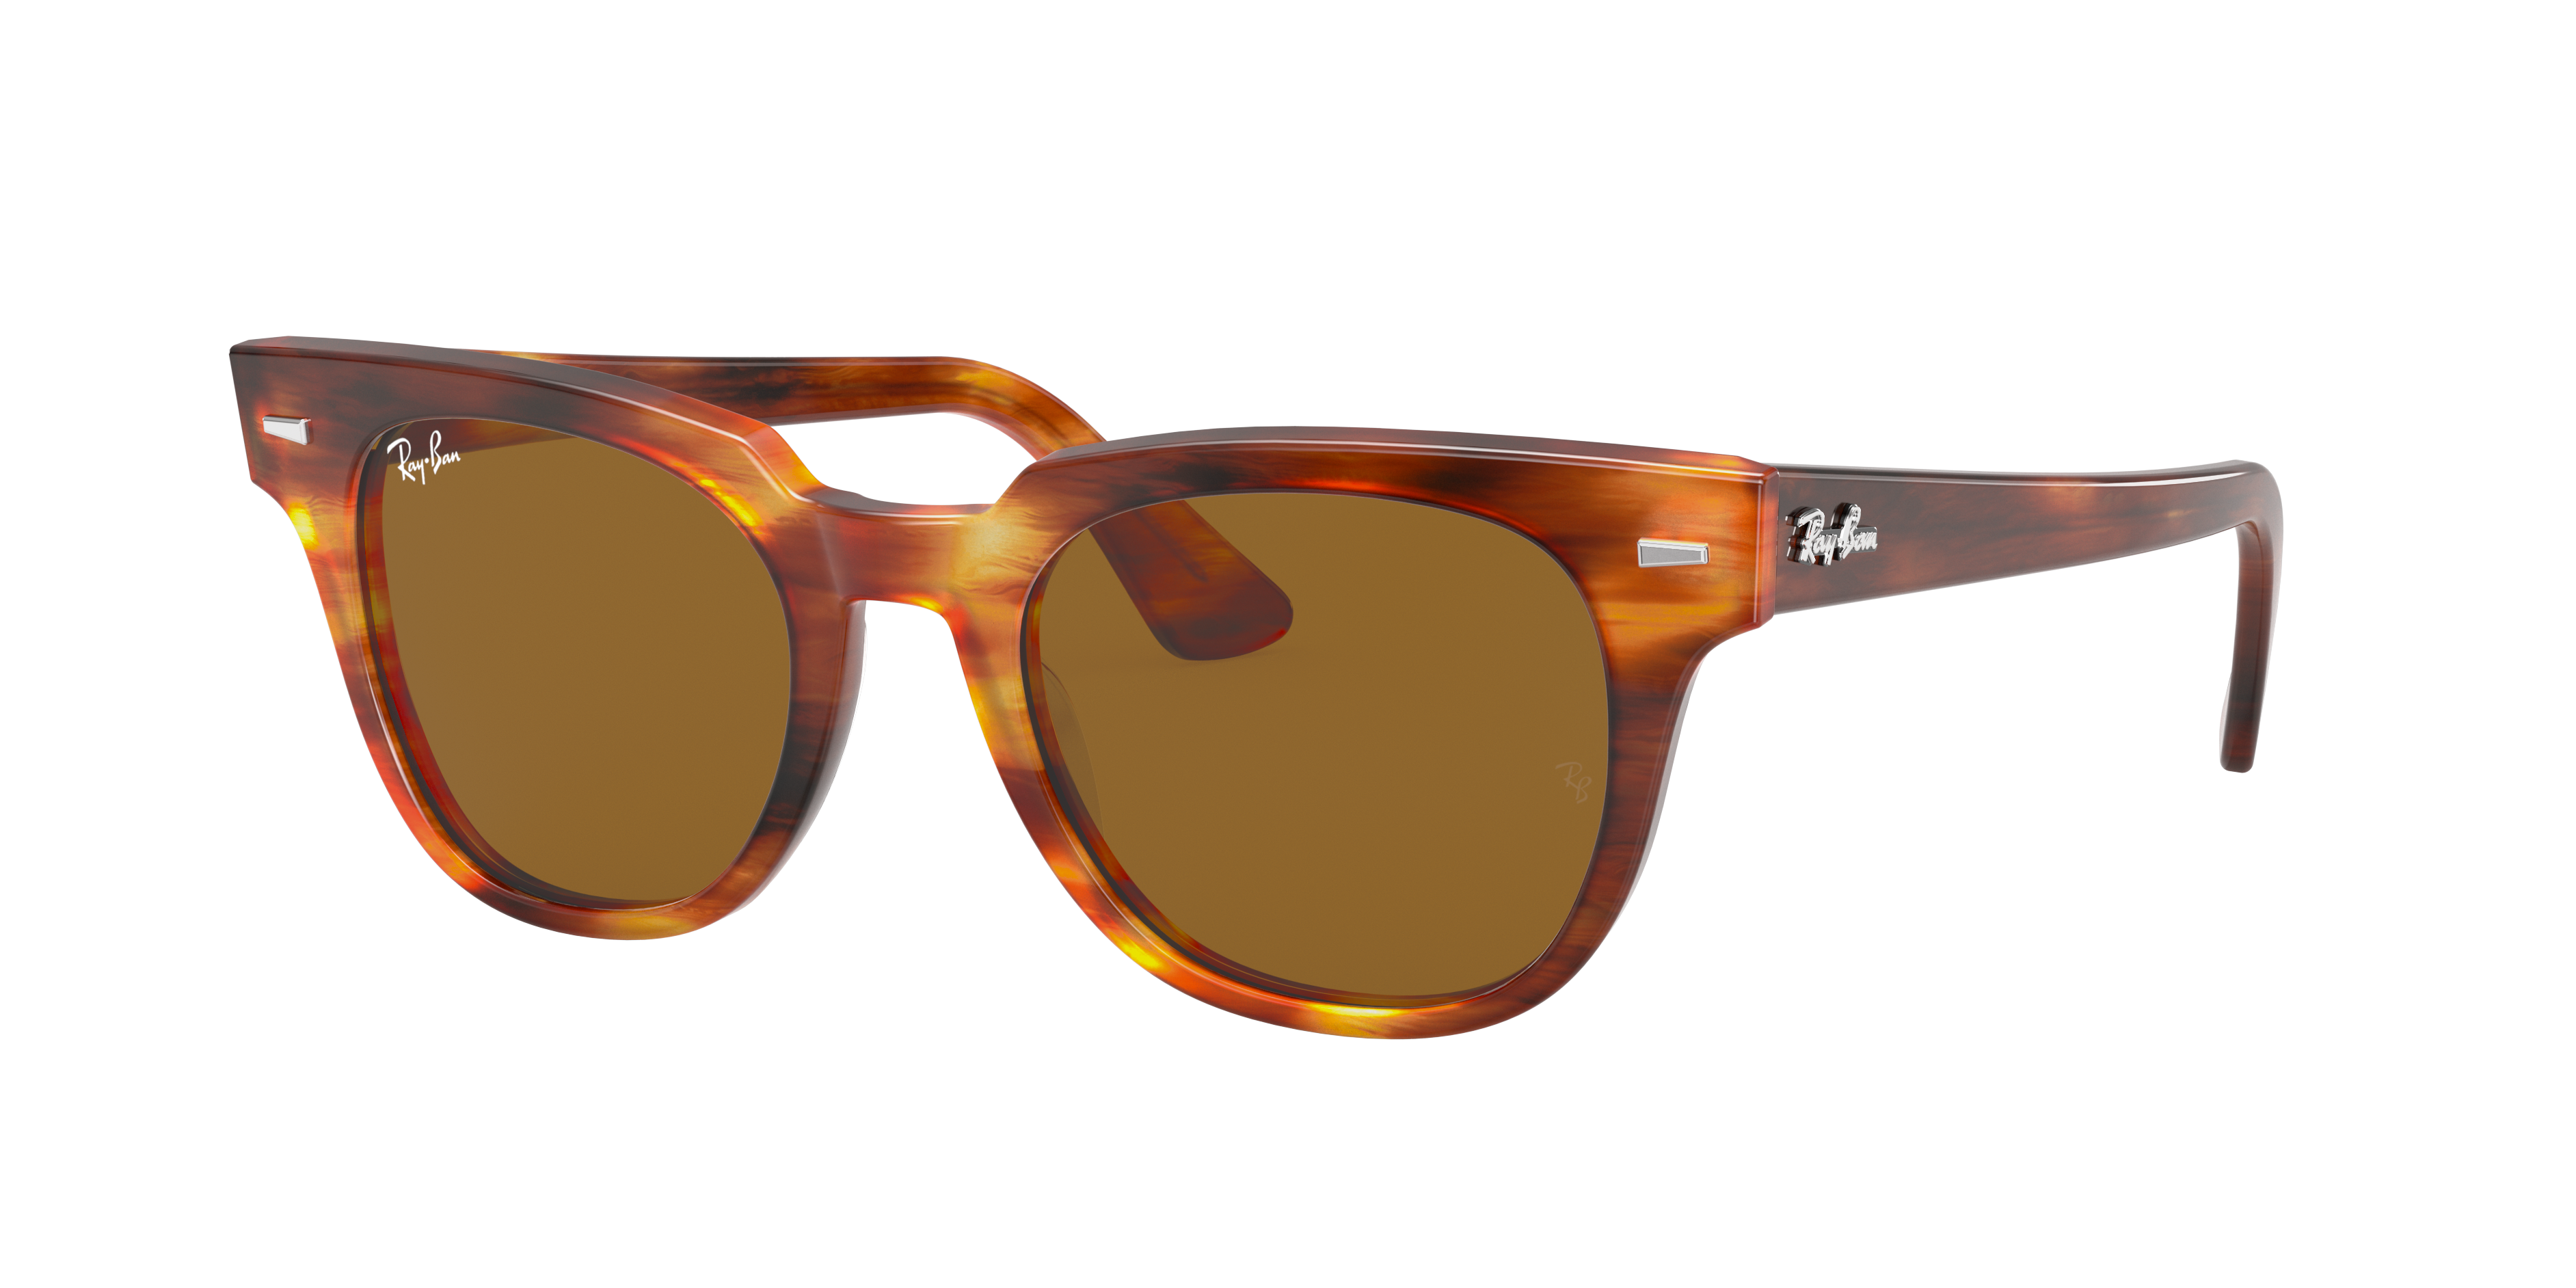 Ray-Ban Meteor Classic Tortoise, Brown Lenses - RB2168